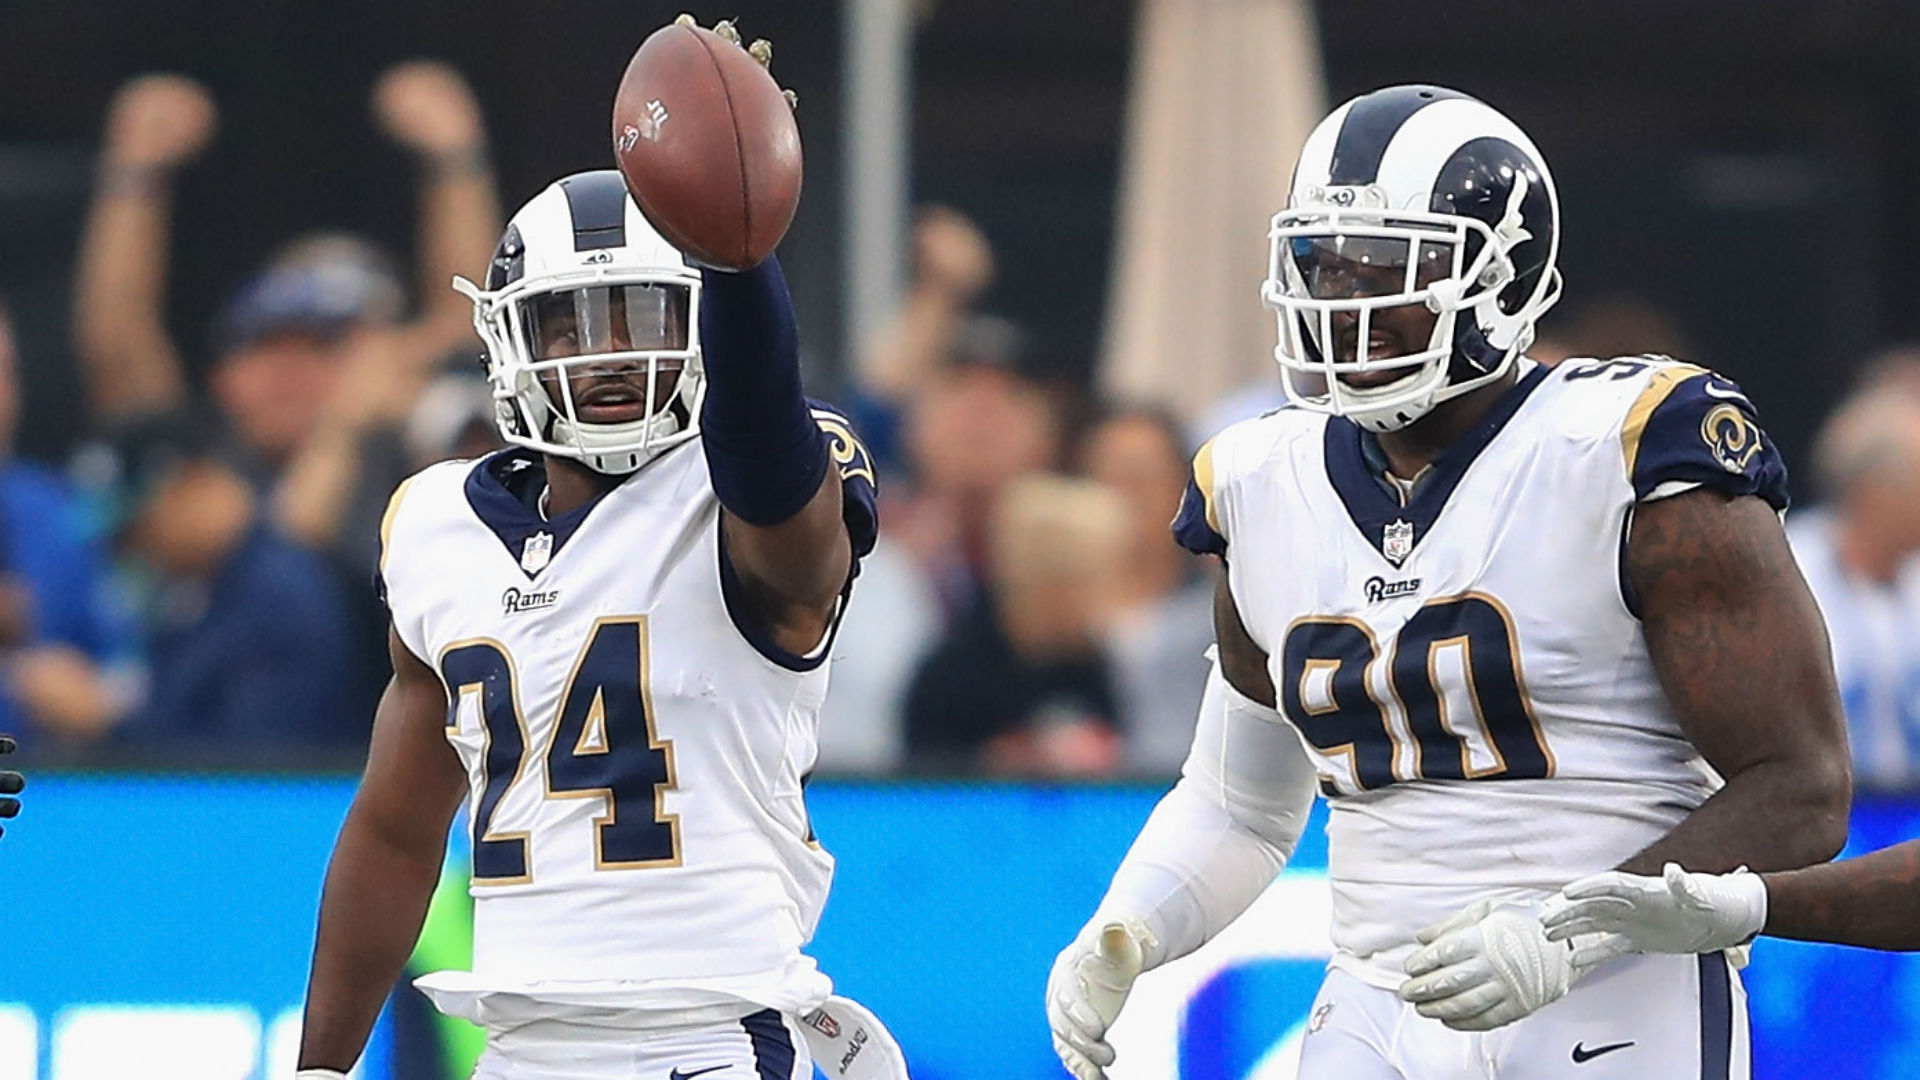 In joint practice, Rams defense proves it's good on more than just paper